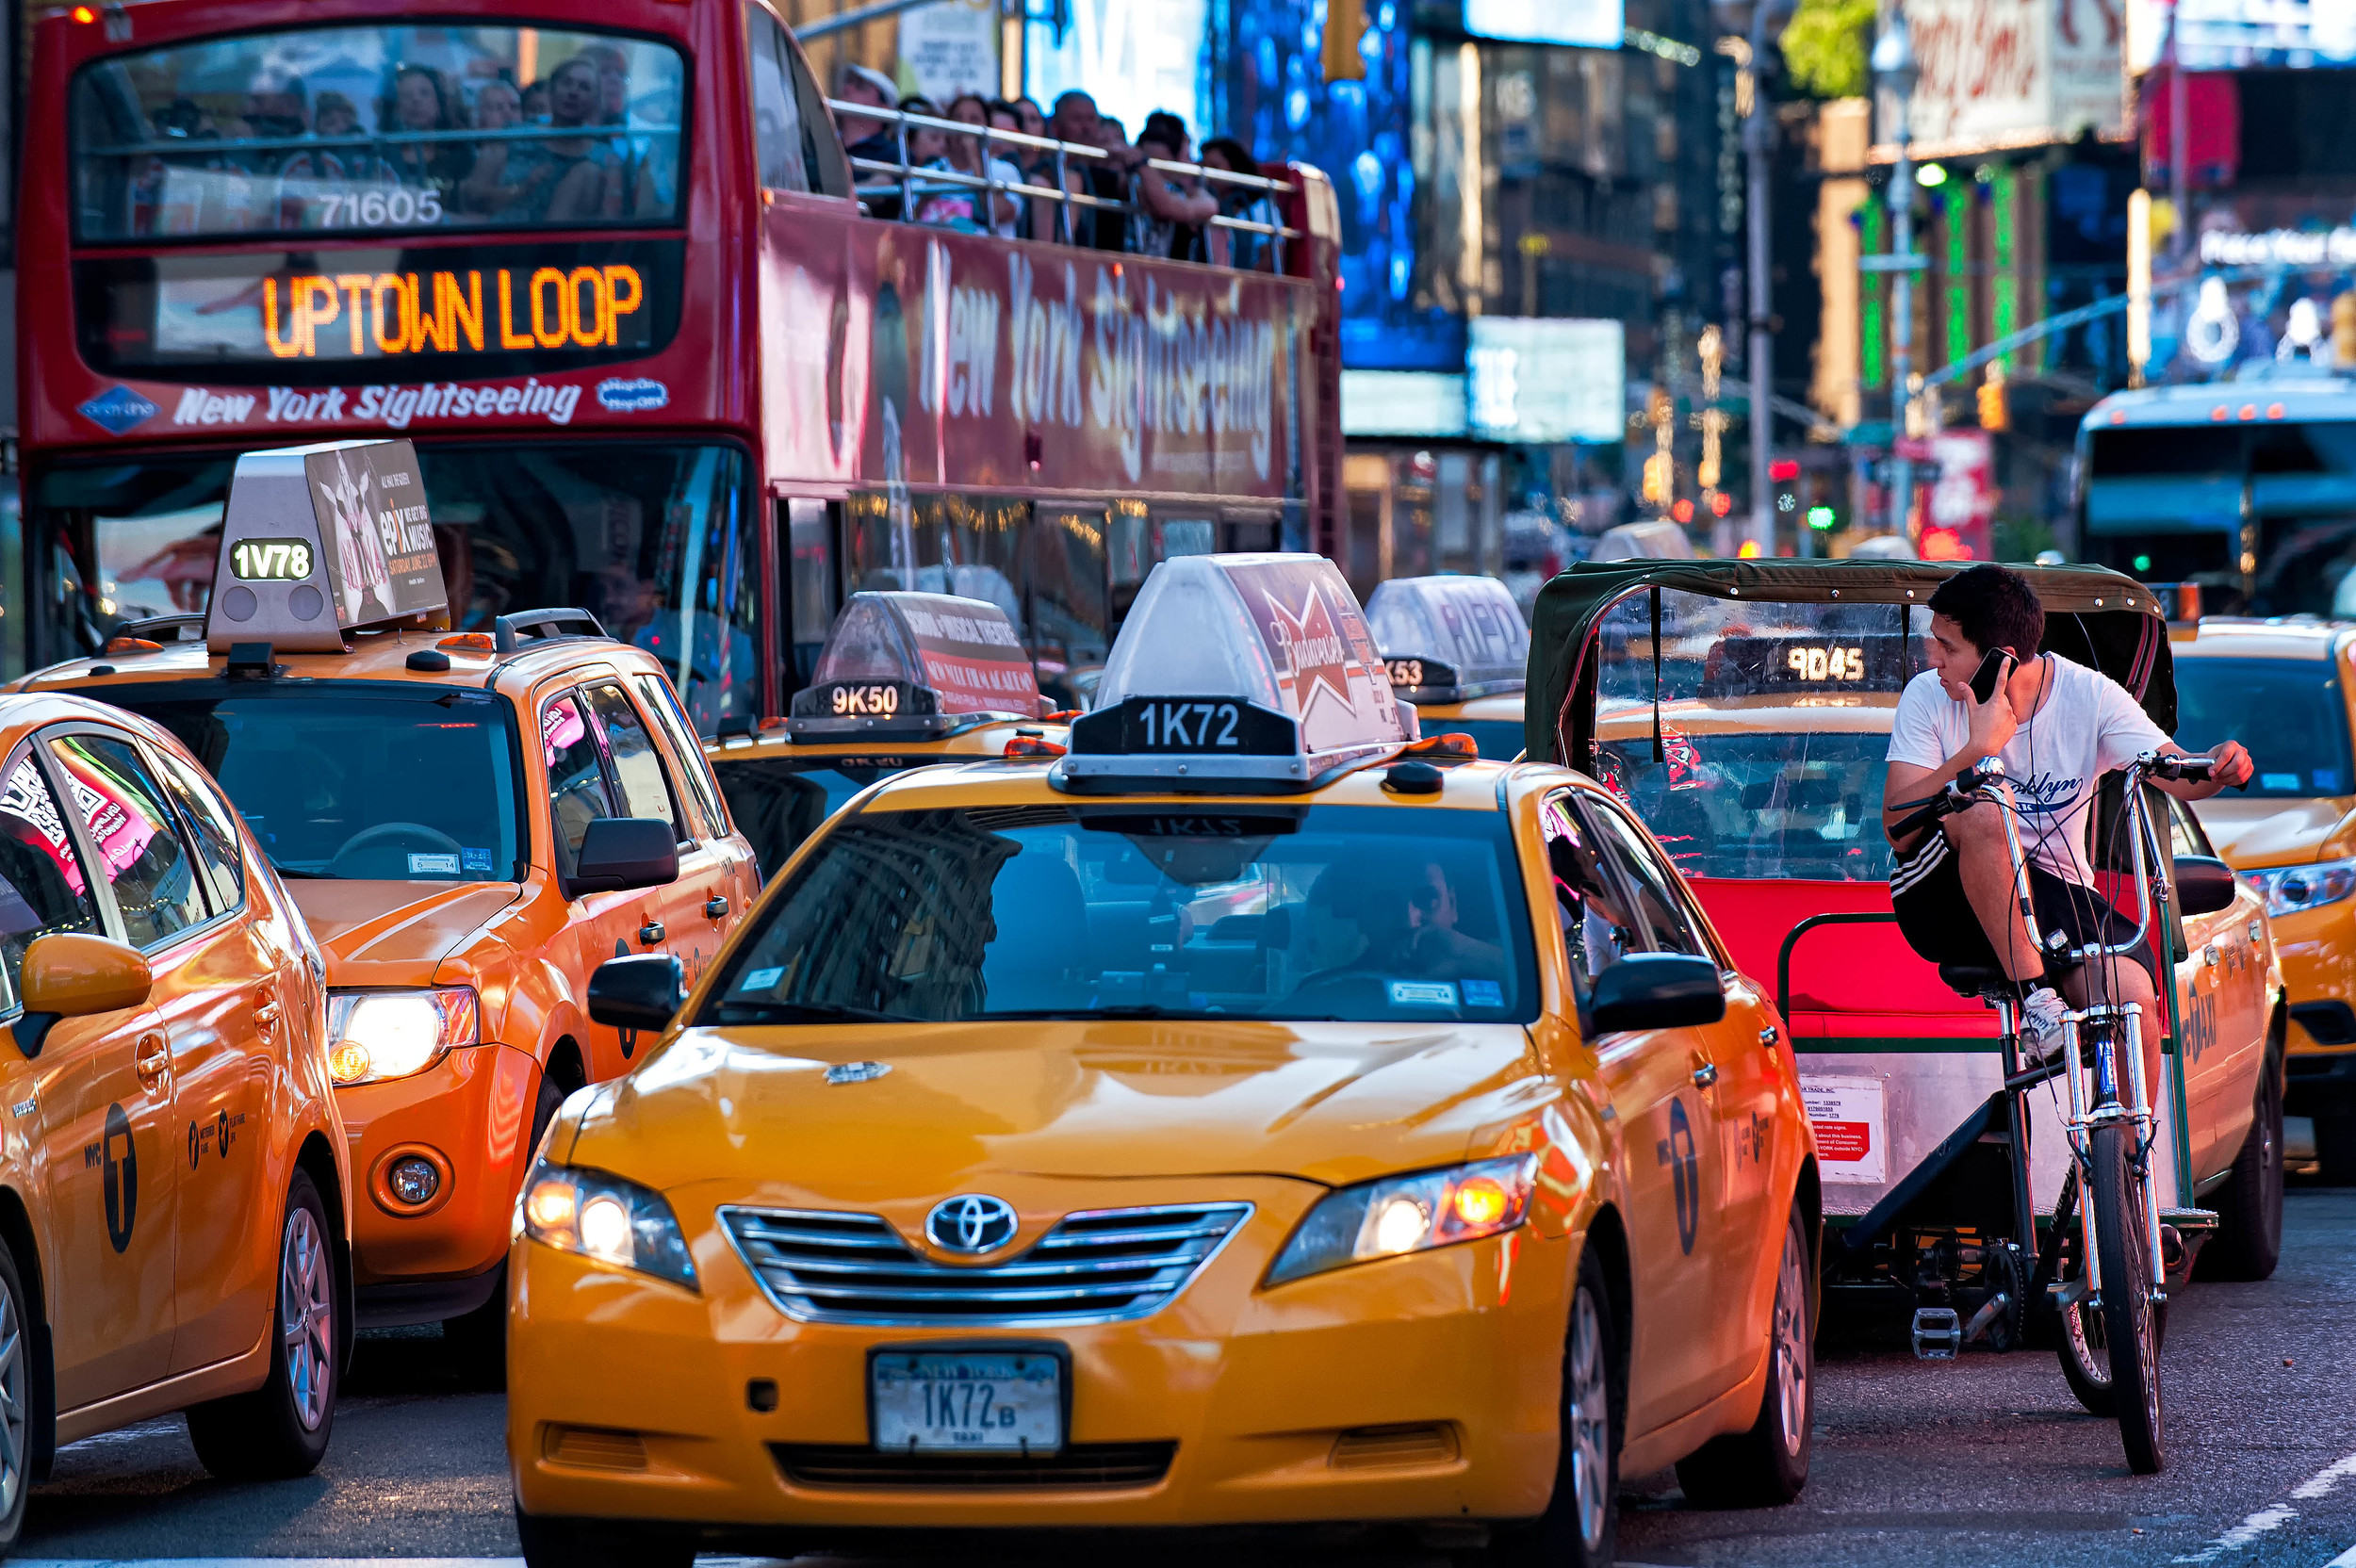 Time Square, Yellow taxi. taxicab, .